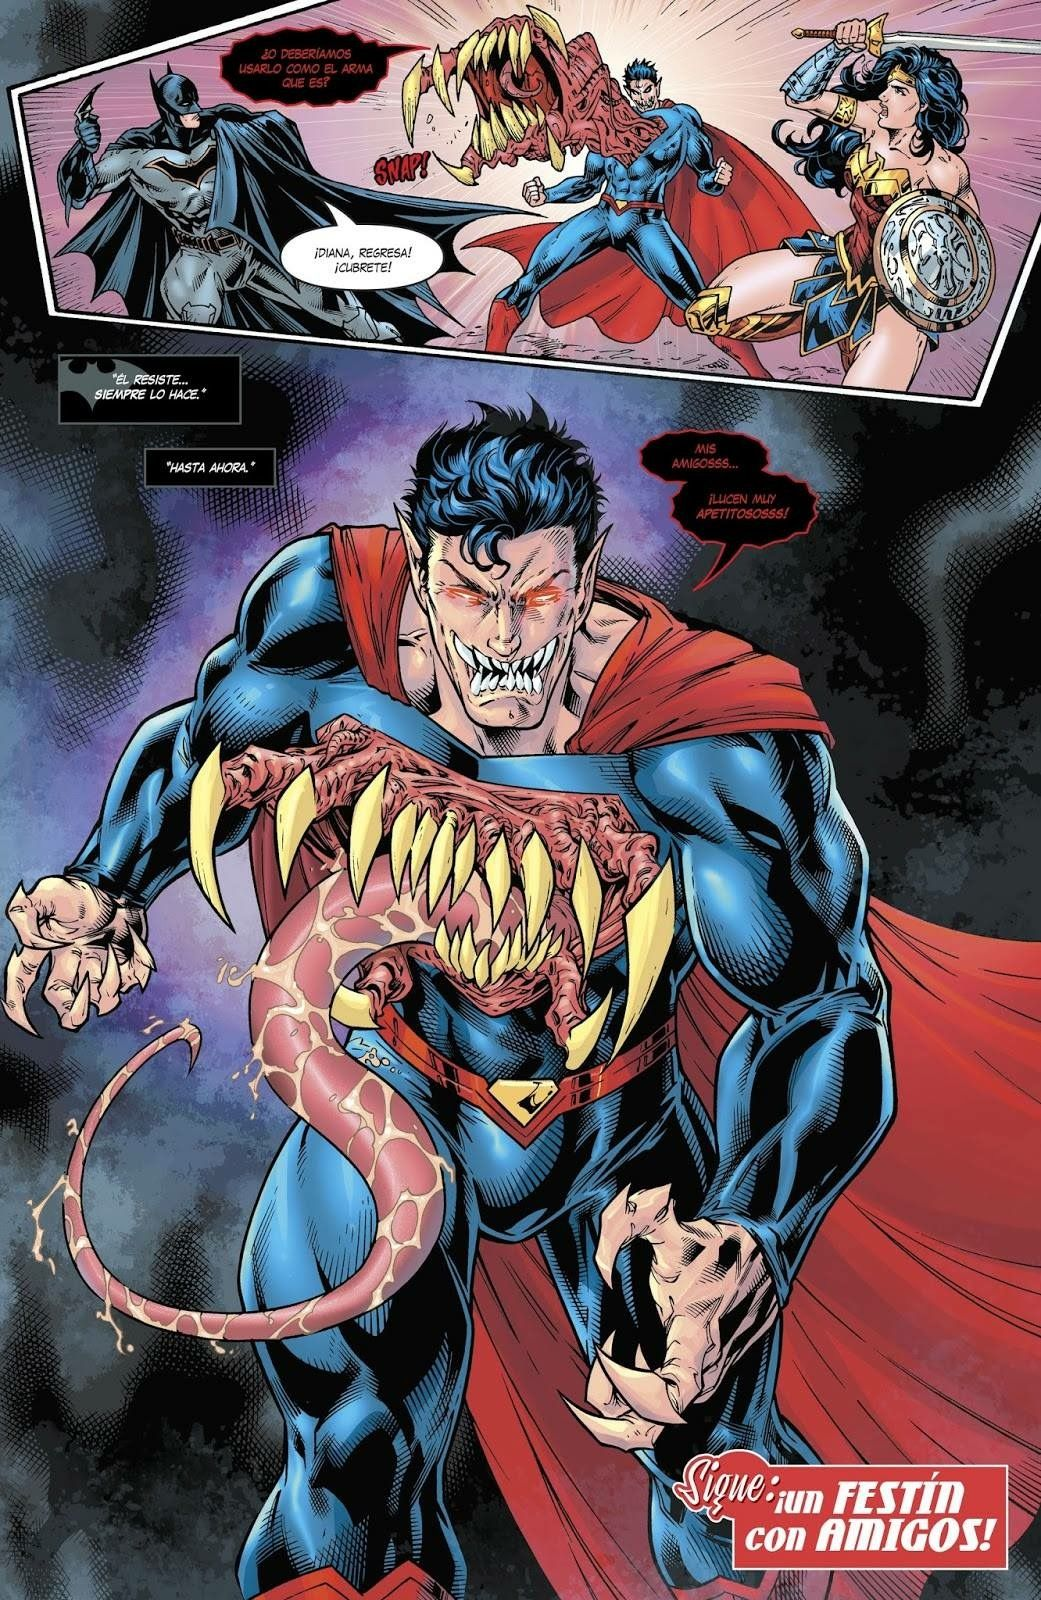 Pin by Timothy WNewsome on Superboy Comics, Superhero